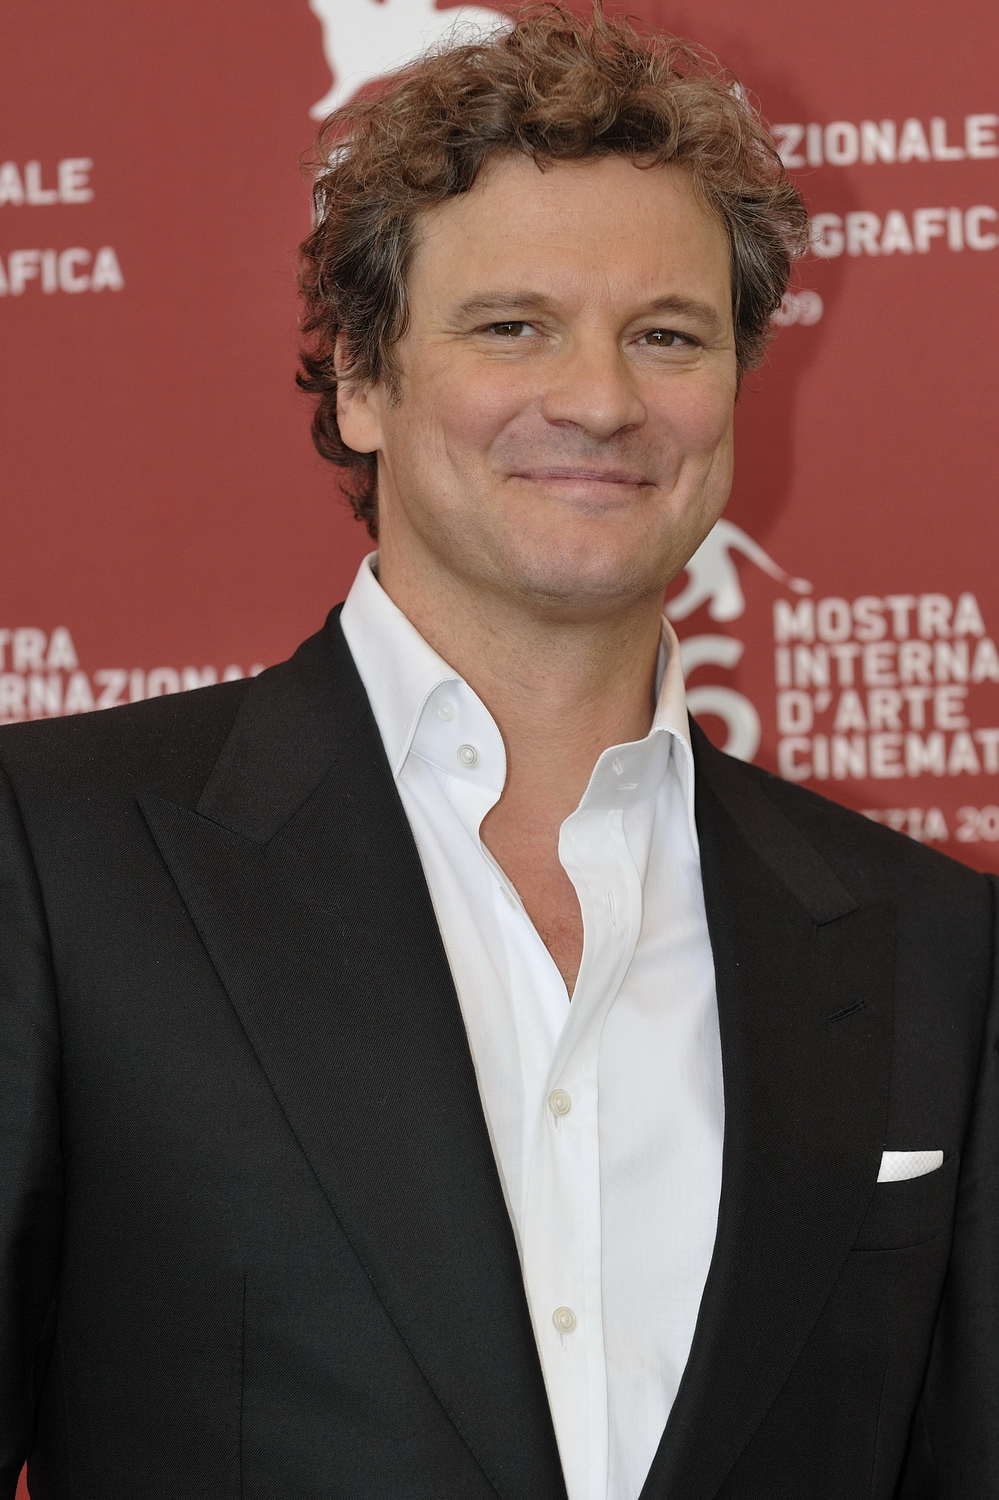 colin firth wikipedia